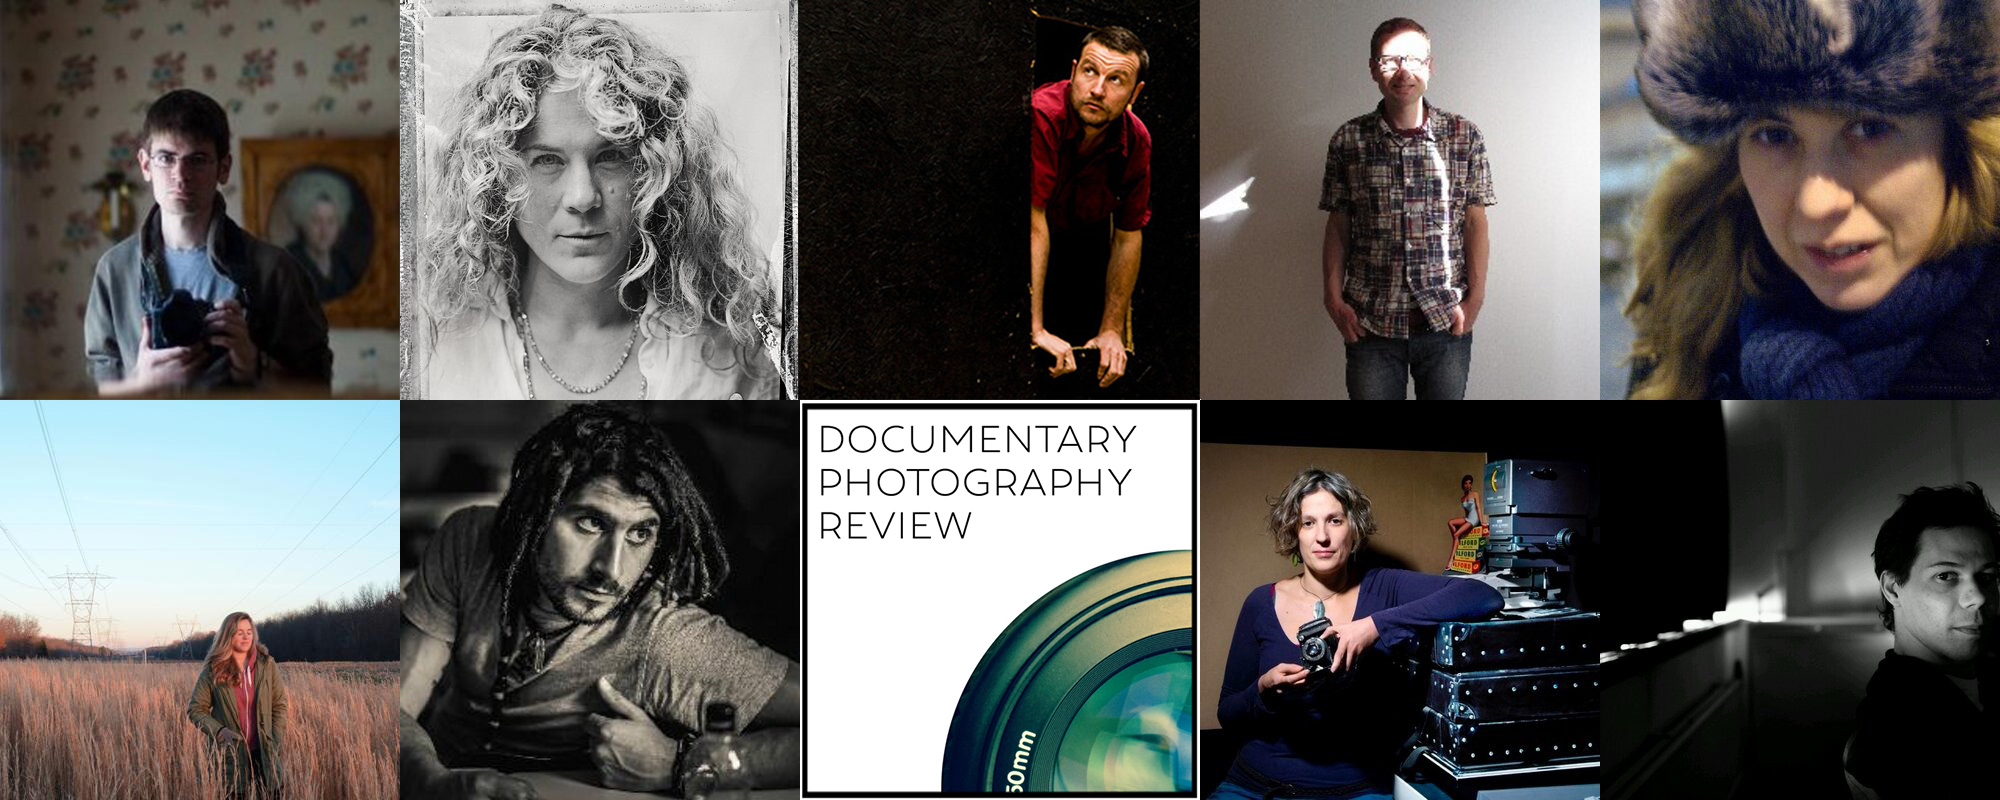 Documentary Photographers share their experiences